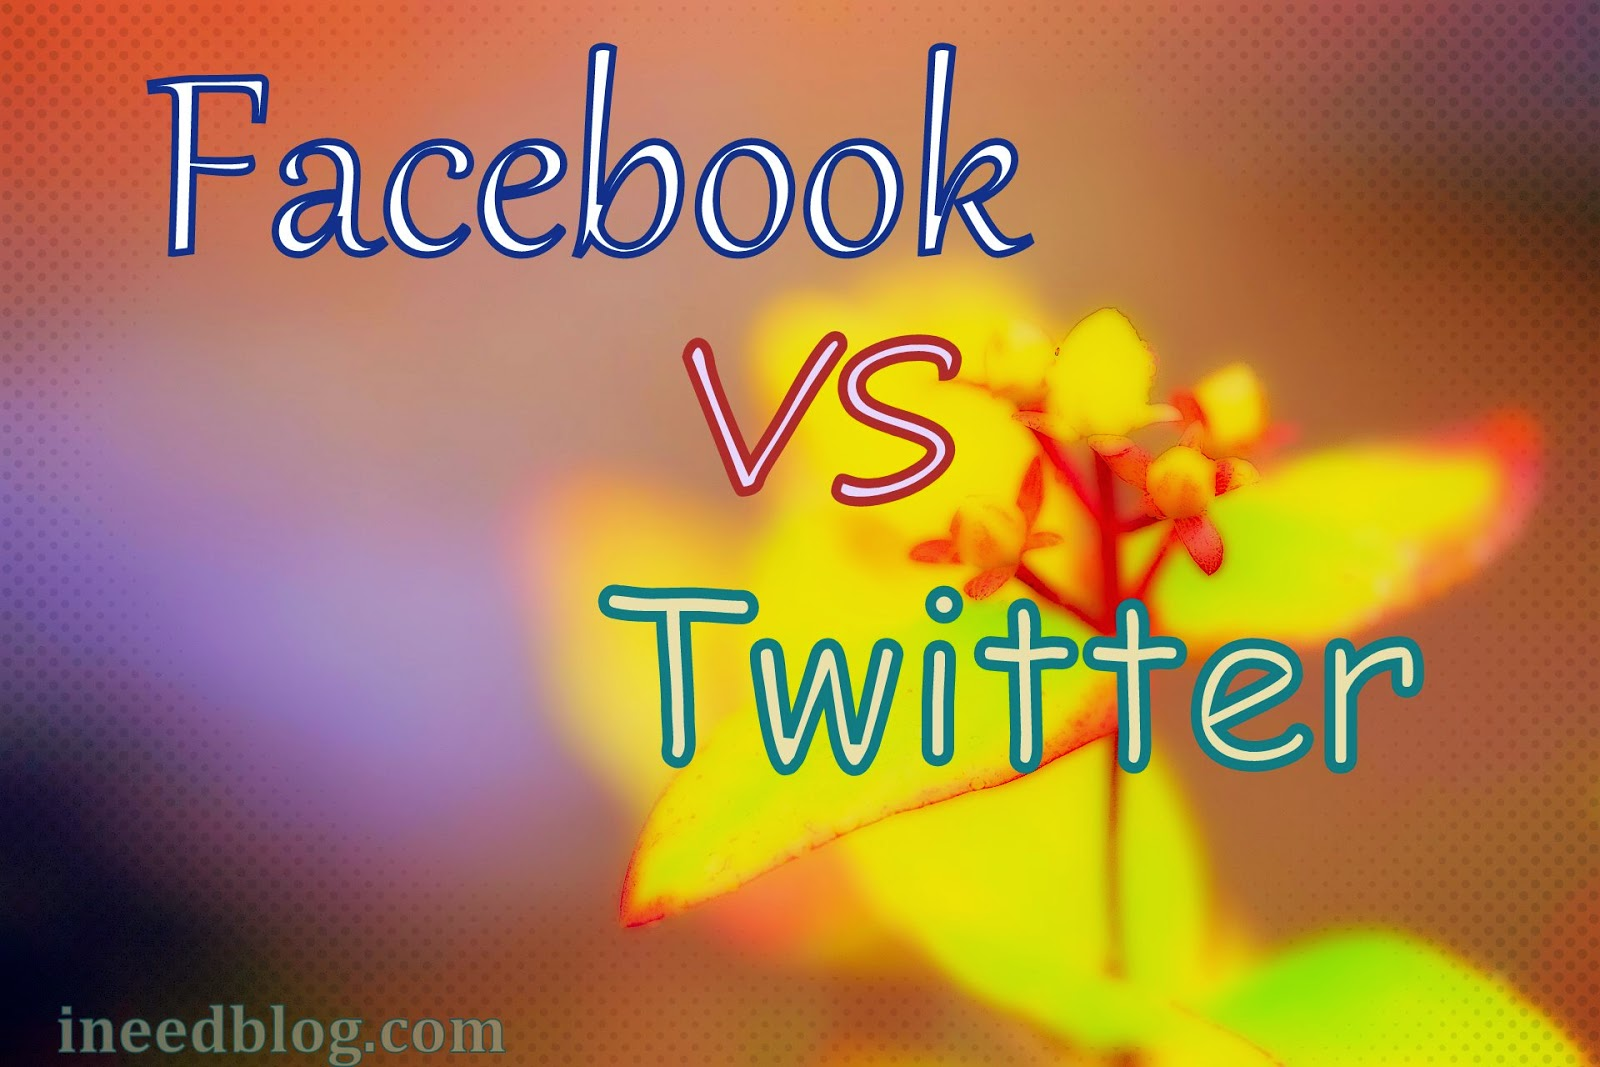 Facebook vs Twitter - Who wins?